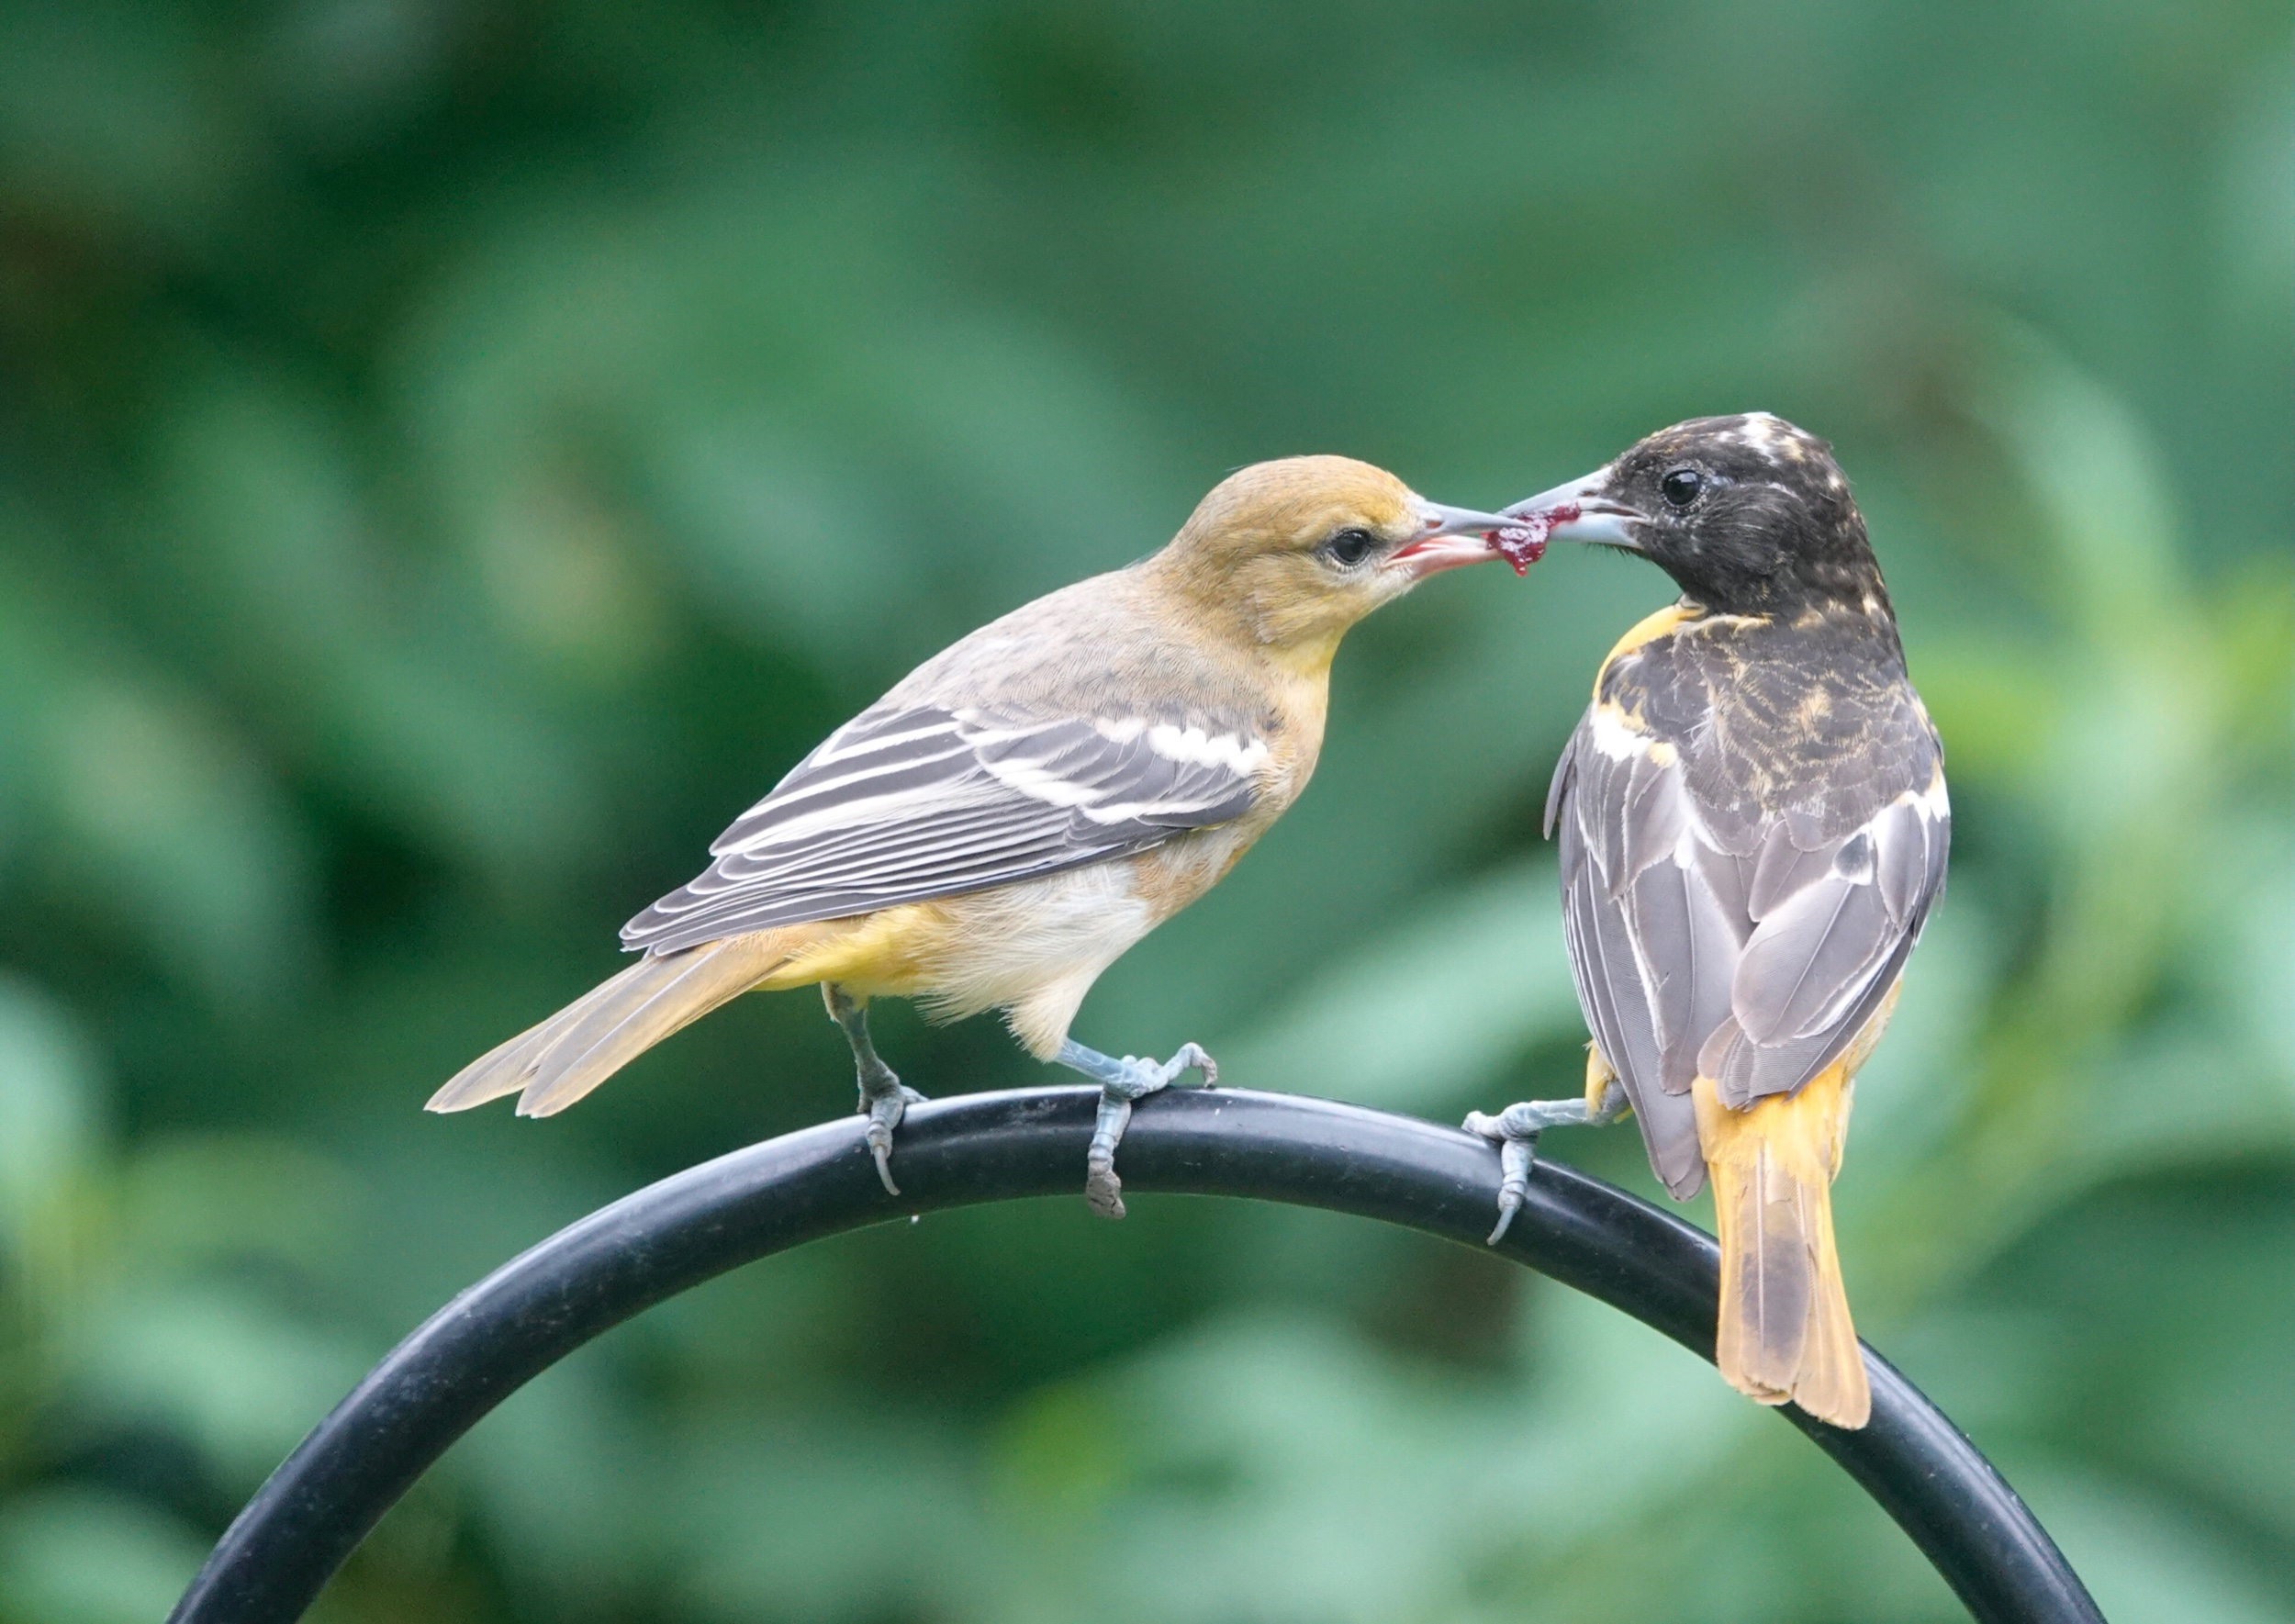 A young Baltimore Oriole discovers a jam mine.